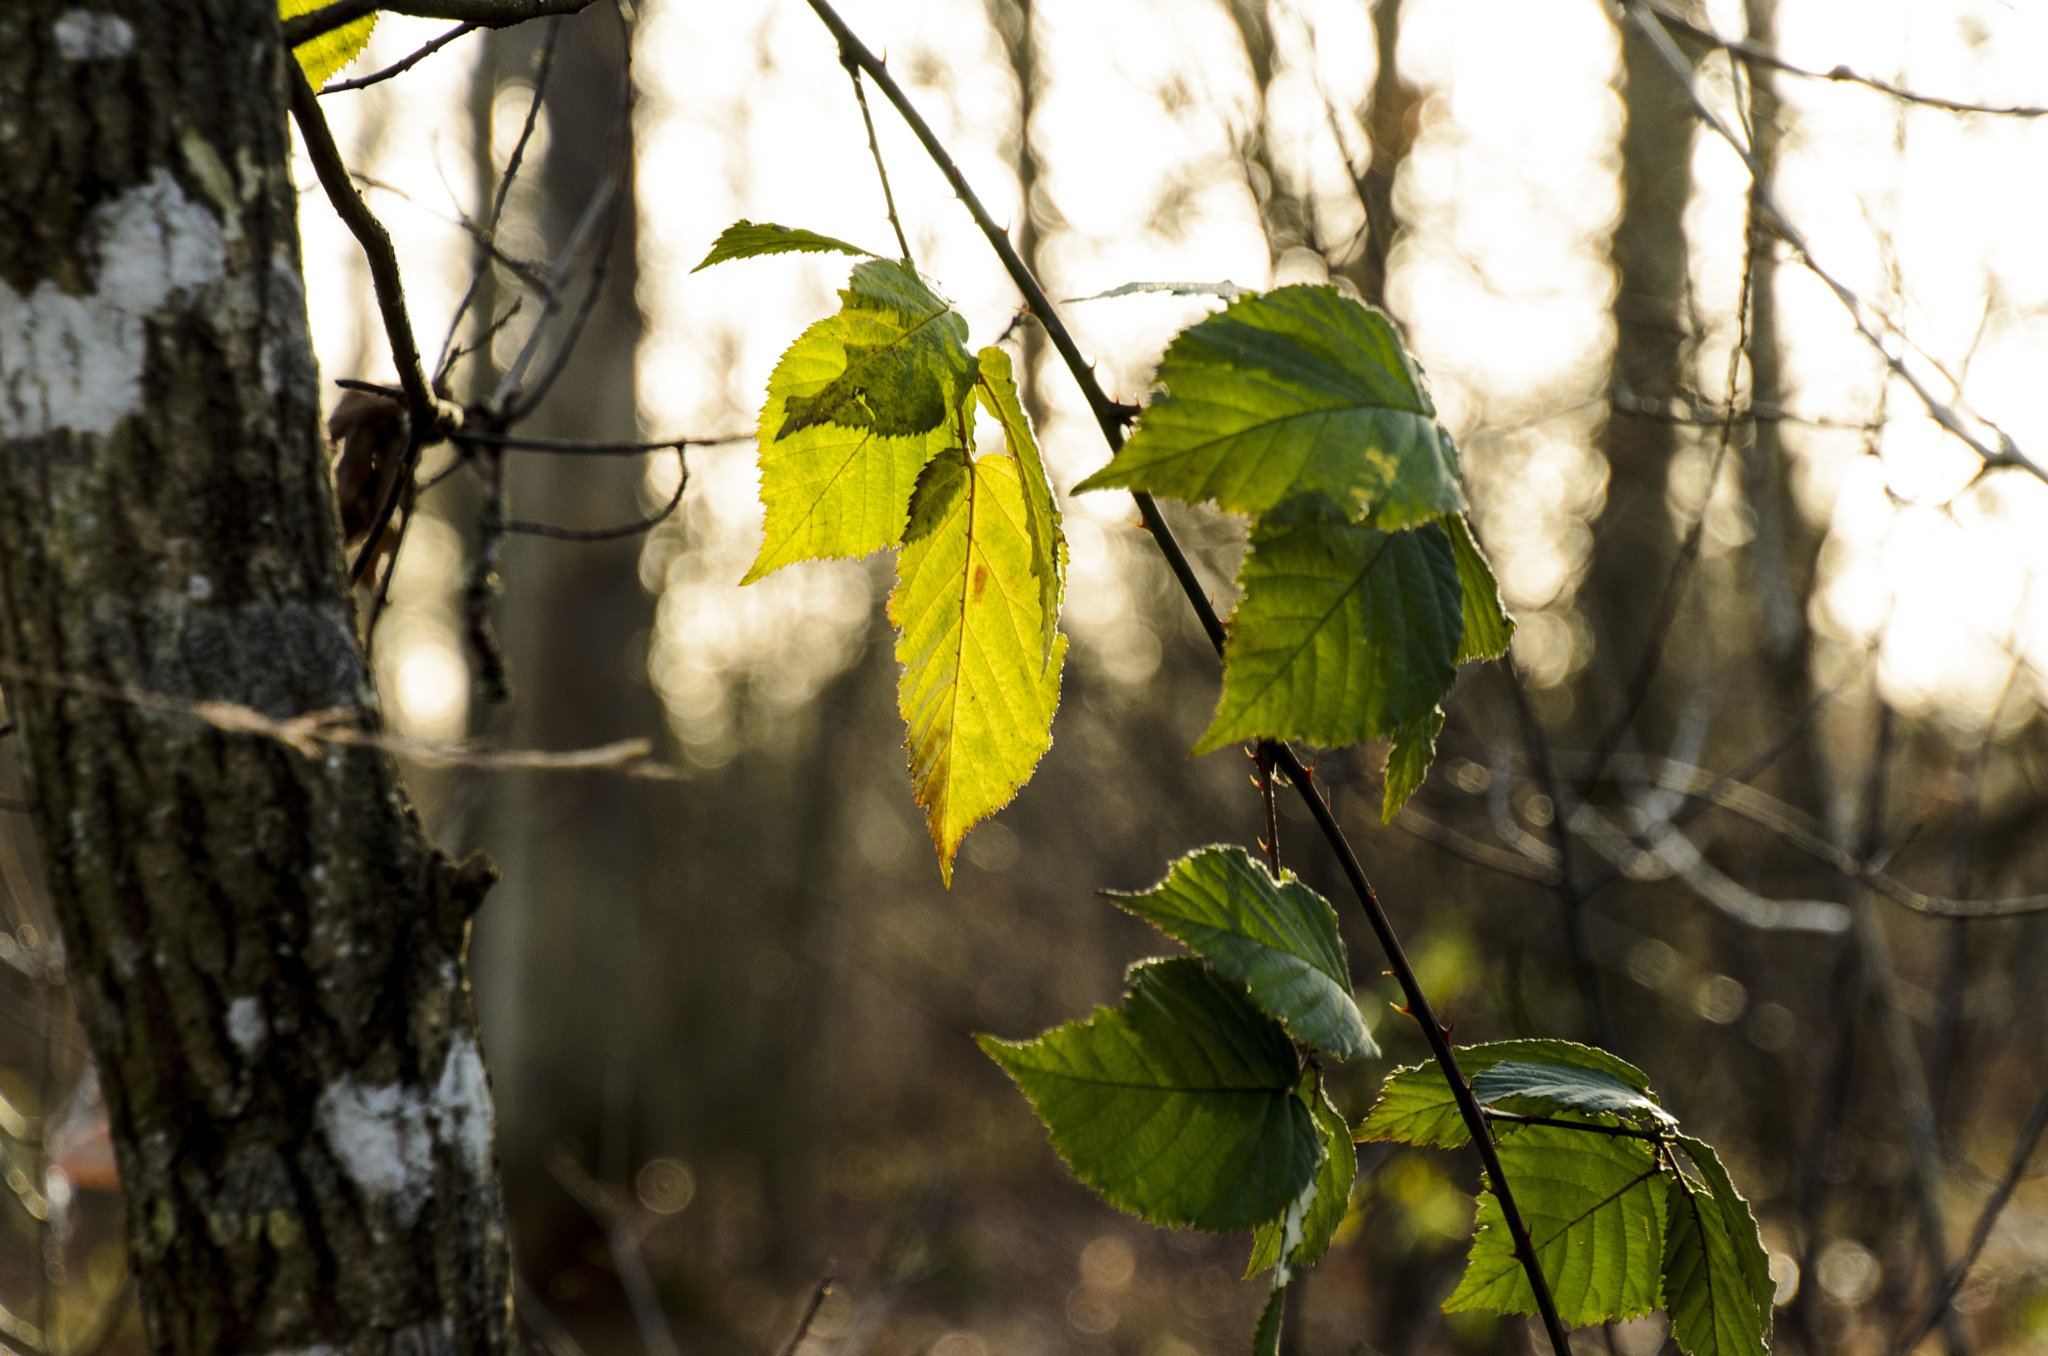 Leaves in the sun by Johnny Lythell